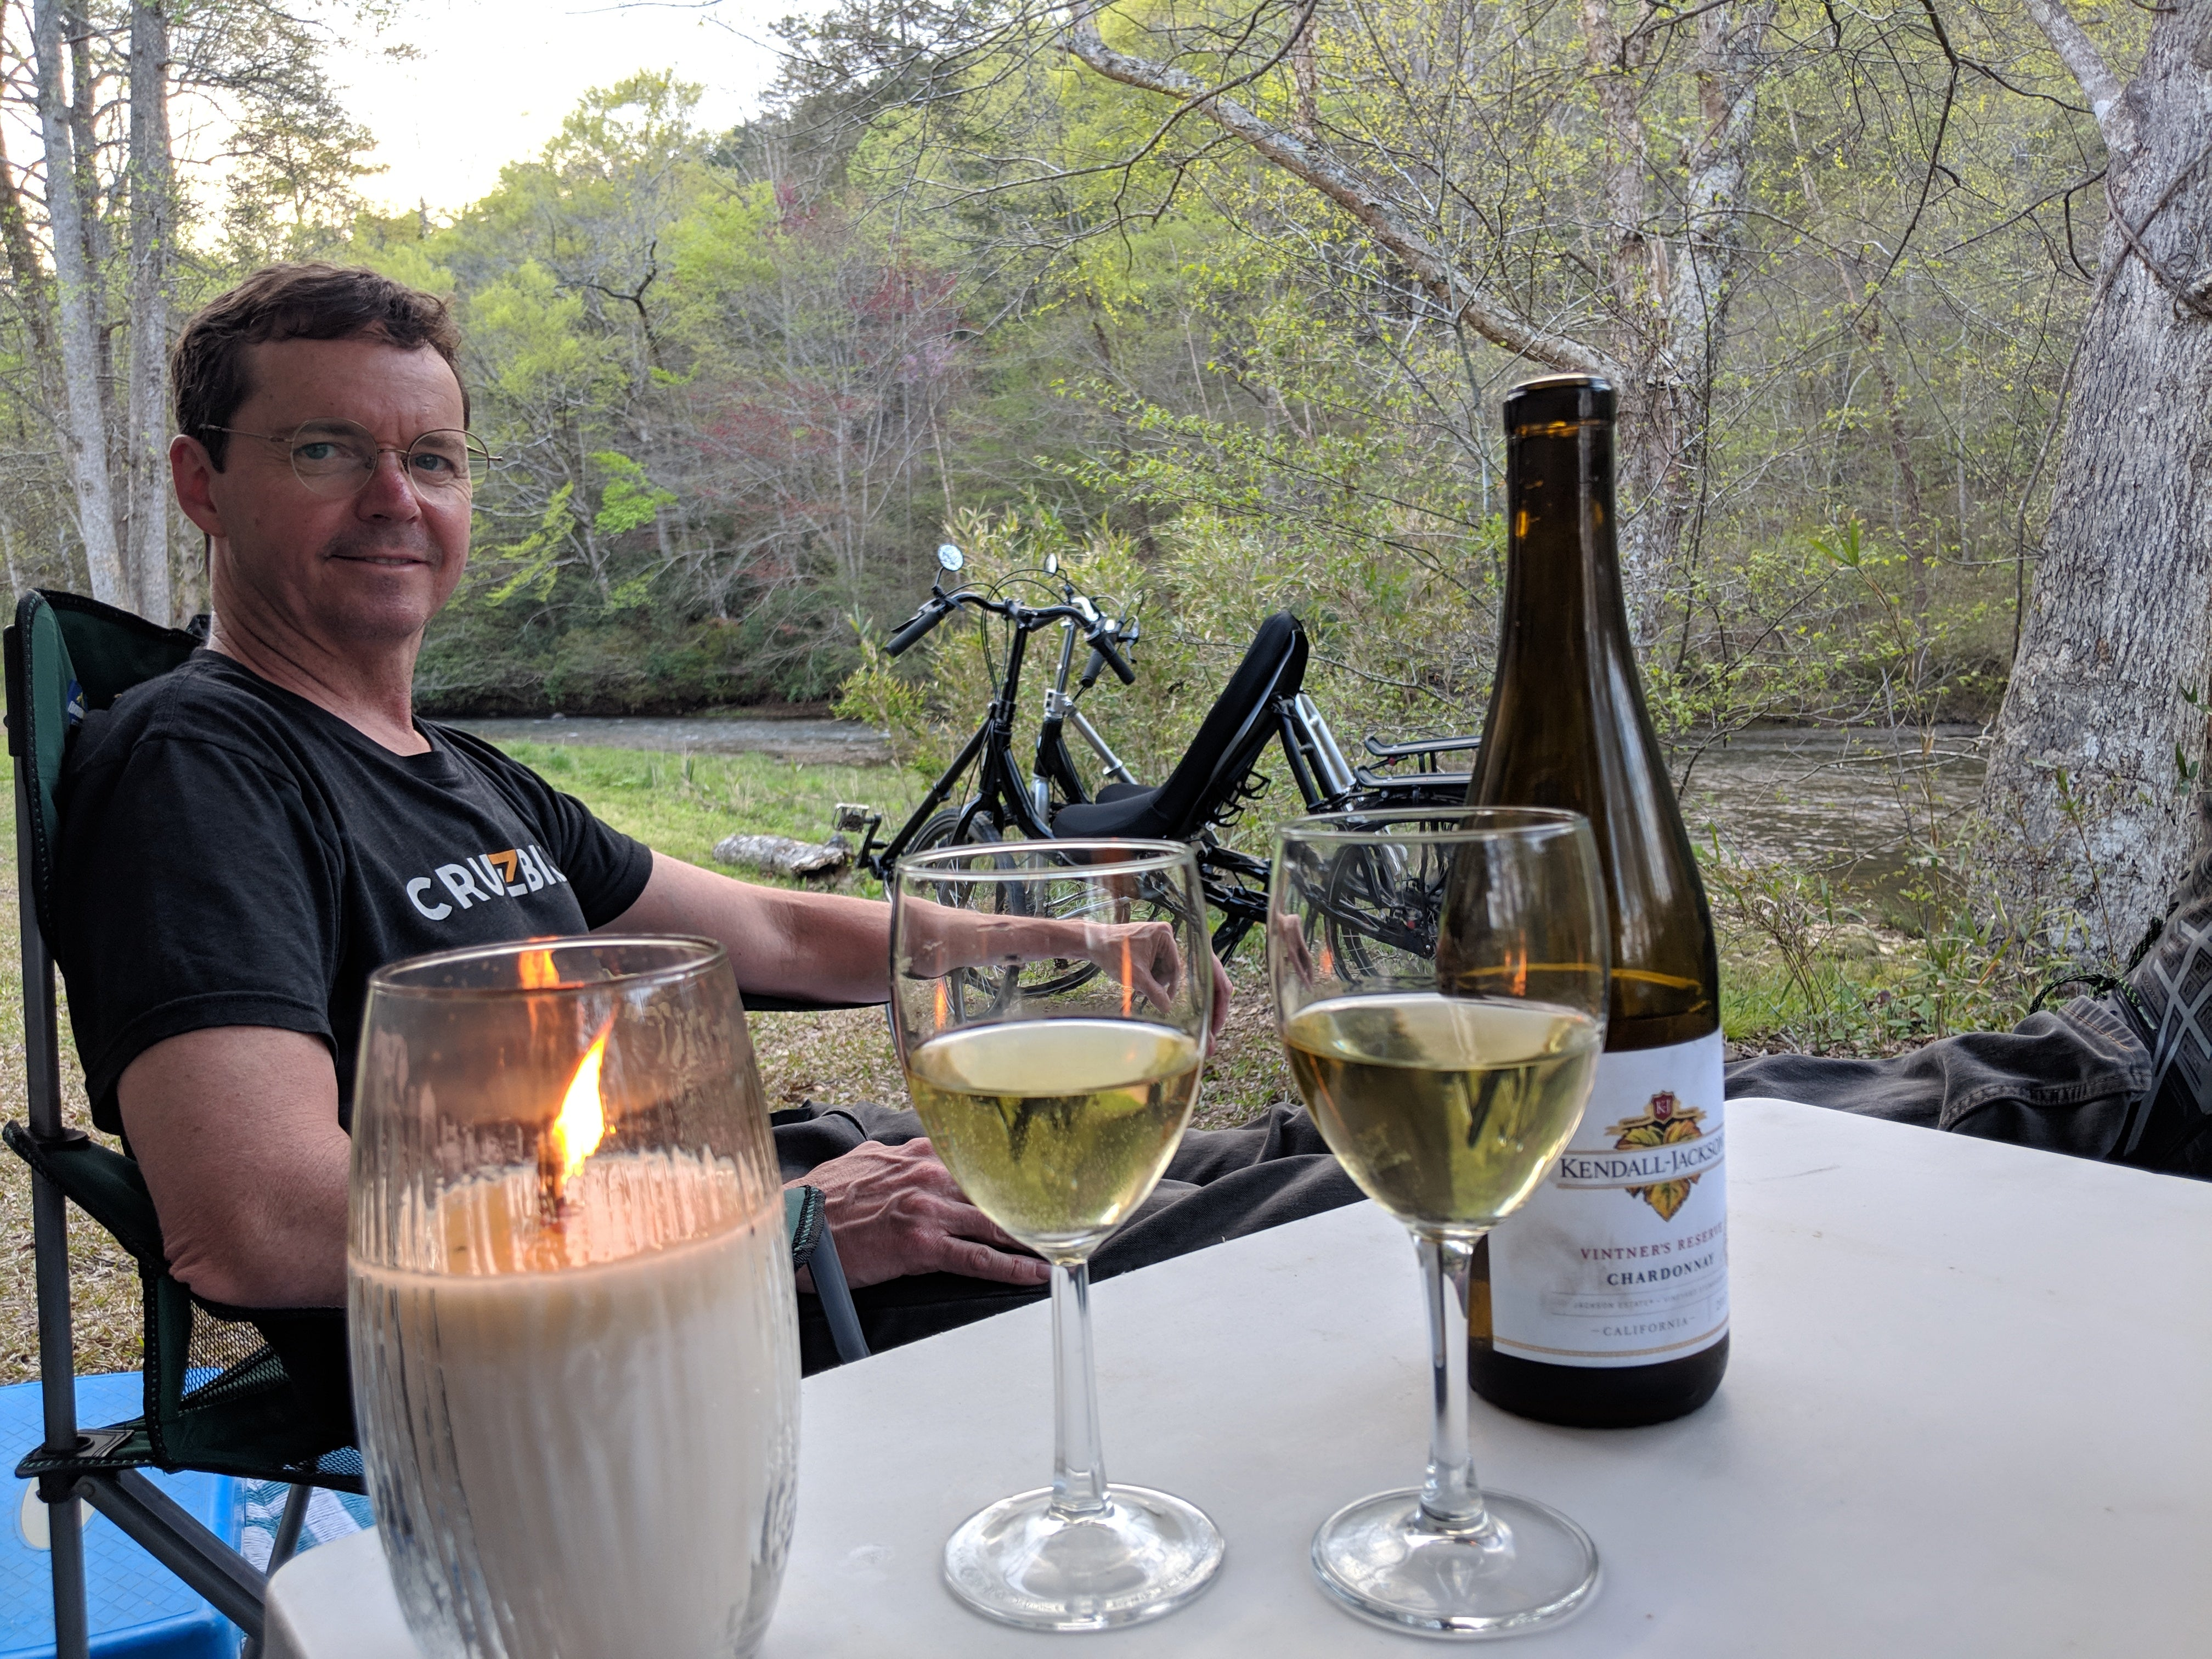 Cycling vacation recumbent bicycle tour Chief Ladiga Trail Campground